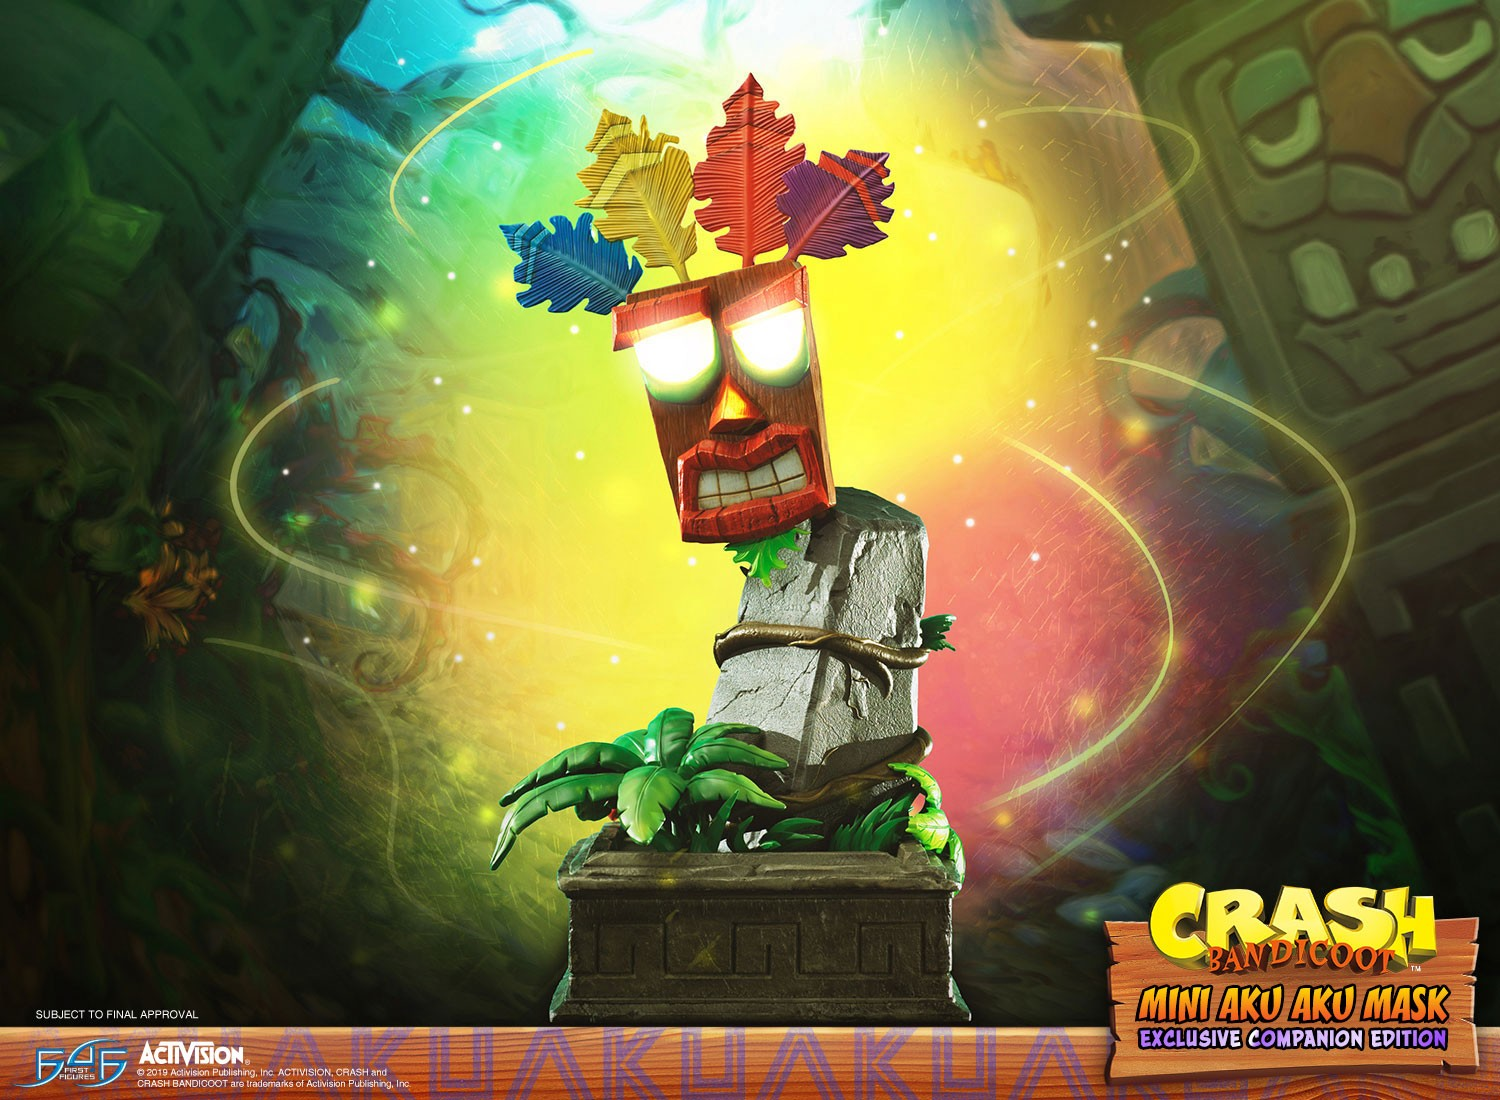 Crash Bandicoot™ - Mini Aku Aku Mask Exclusive Companion Edition